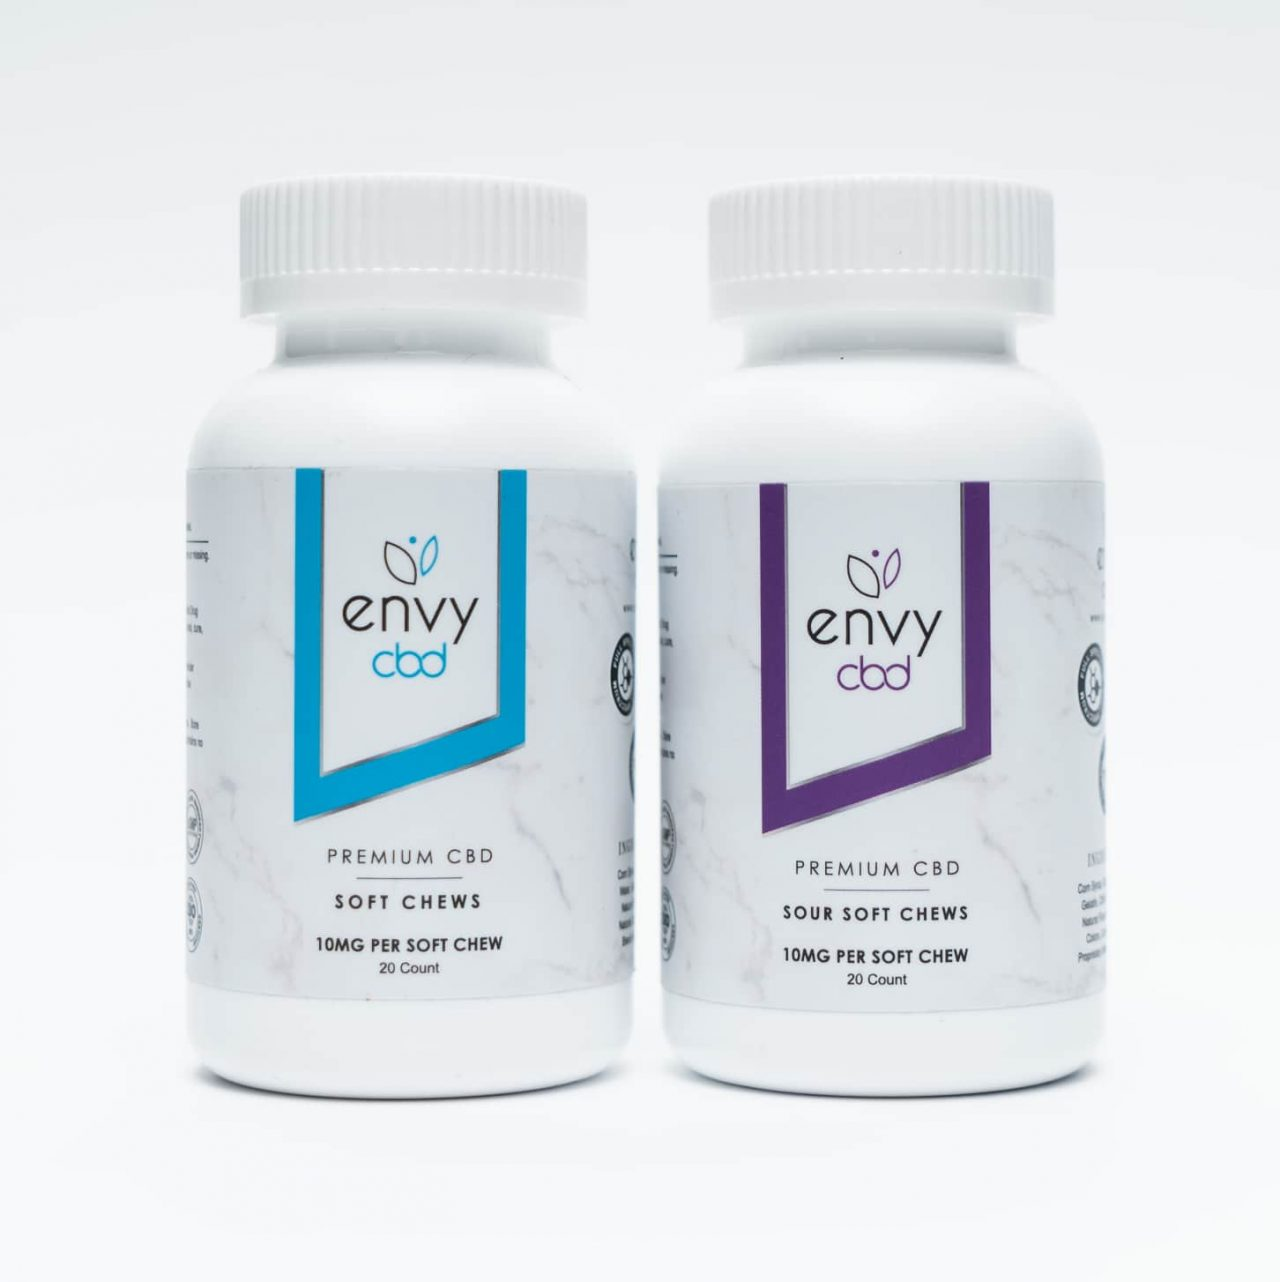 envy-cbd-cbd-gummies-20-count-200mg-of-cbd